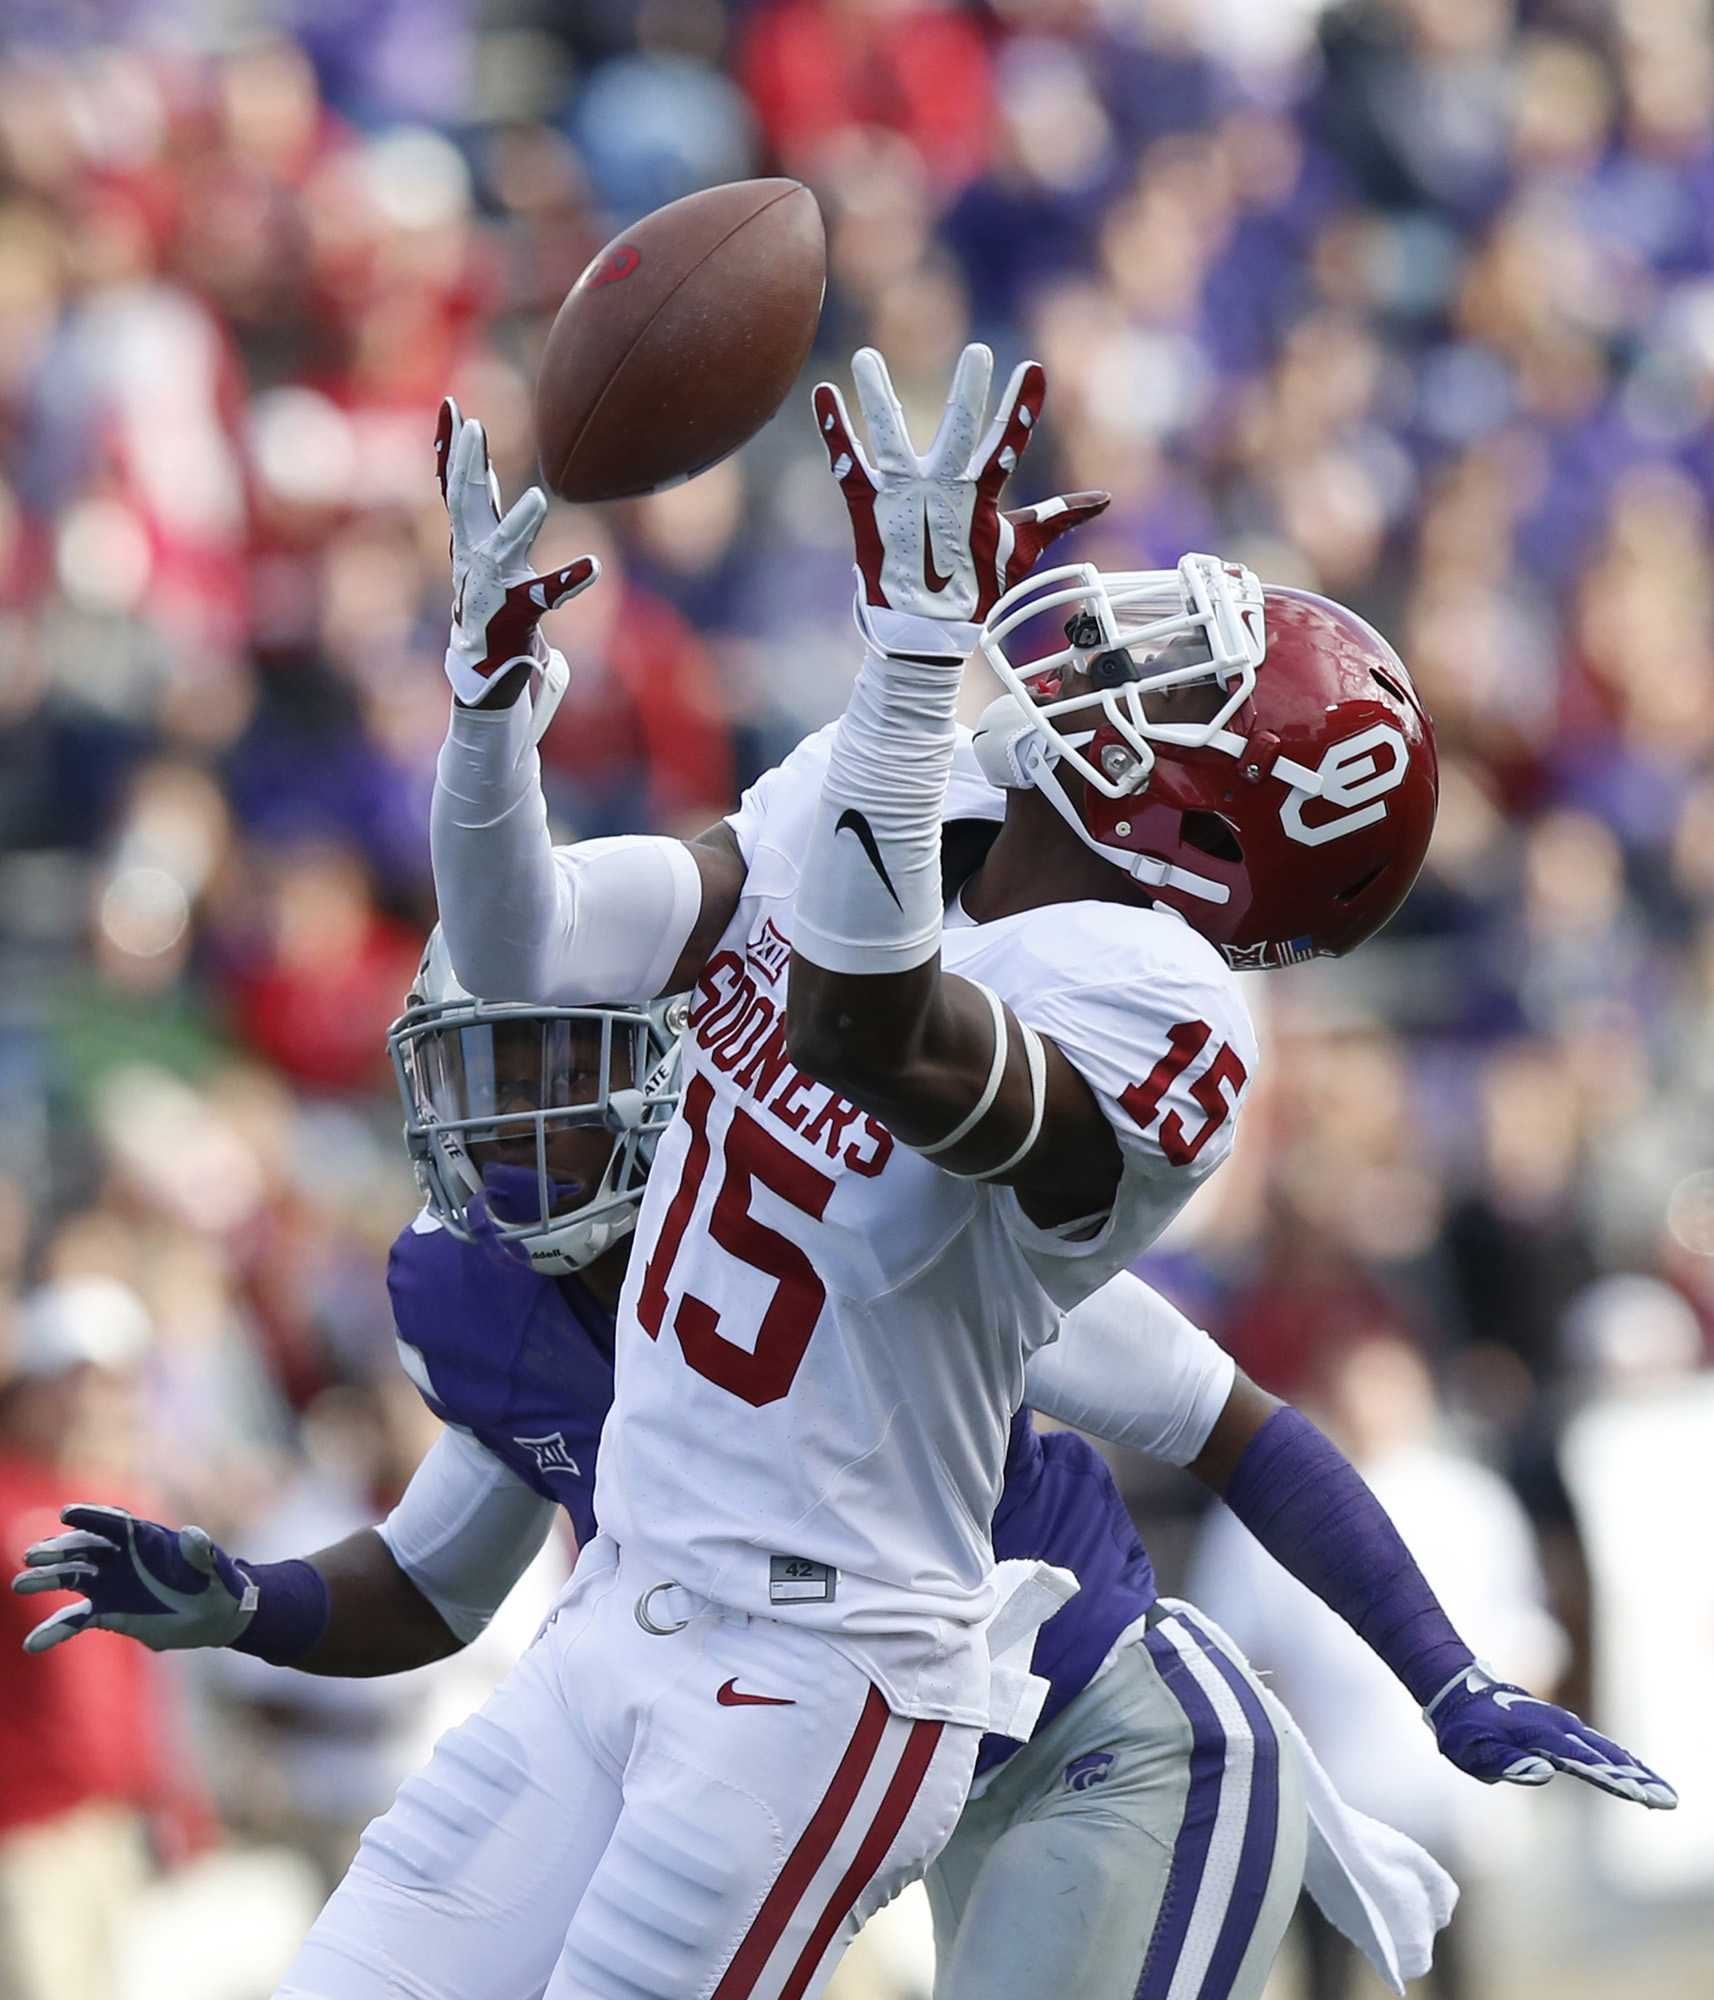 Oklahoma+wide+receiver+Jeffery+Mead+%2815%29+tries+to+get+under+a+Baker+Mayfield+pass+in+the+third+quarter+against+Kansas+State+at+Bill+Snyder+Family+Stadium+in+Manhattan%2C+Kan.%2C+on+Saturday%2C+Oct.+17%2C+2015.+Oklahoma+won%2C+55-0.+%28Bo+Rader%2FWichita+Eagle%2FTNS%29